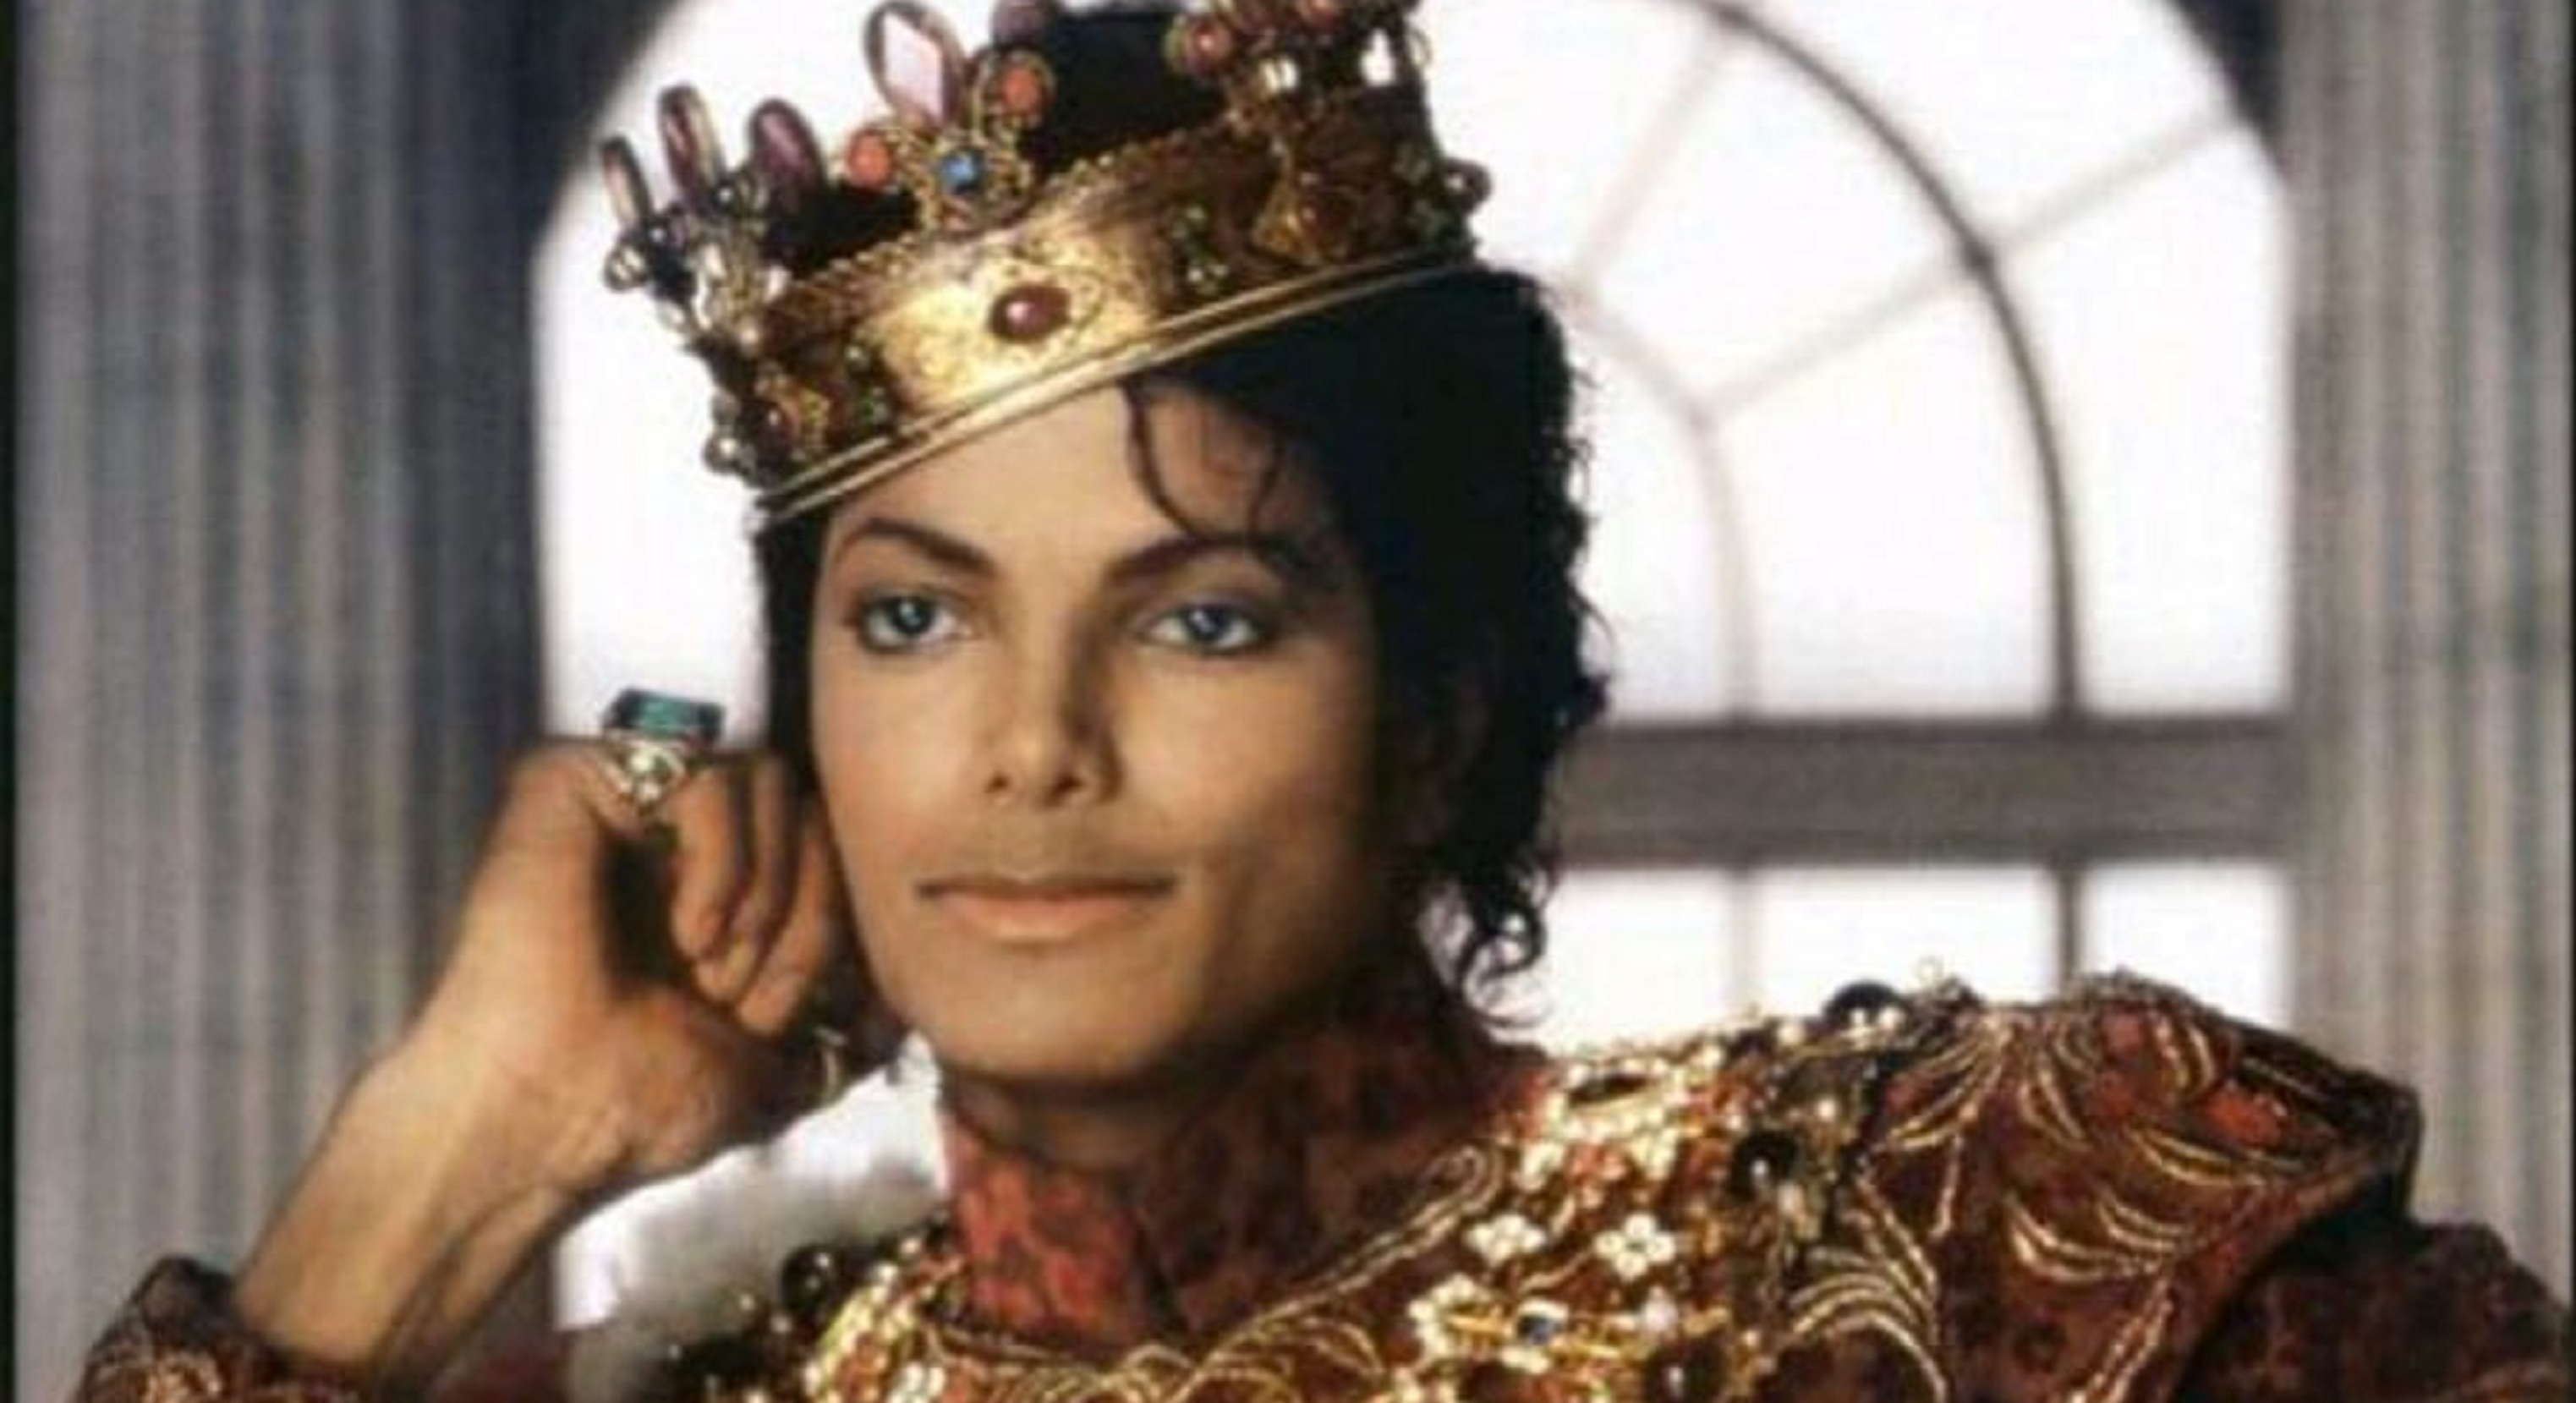 Forbes: Michael Jackson Highest Earning Deceased Celeb, with $400 Million in 2018 Alone!